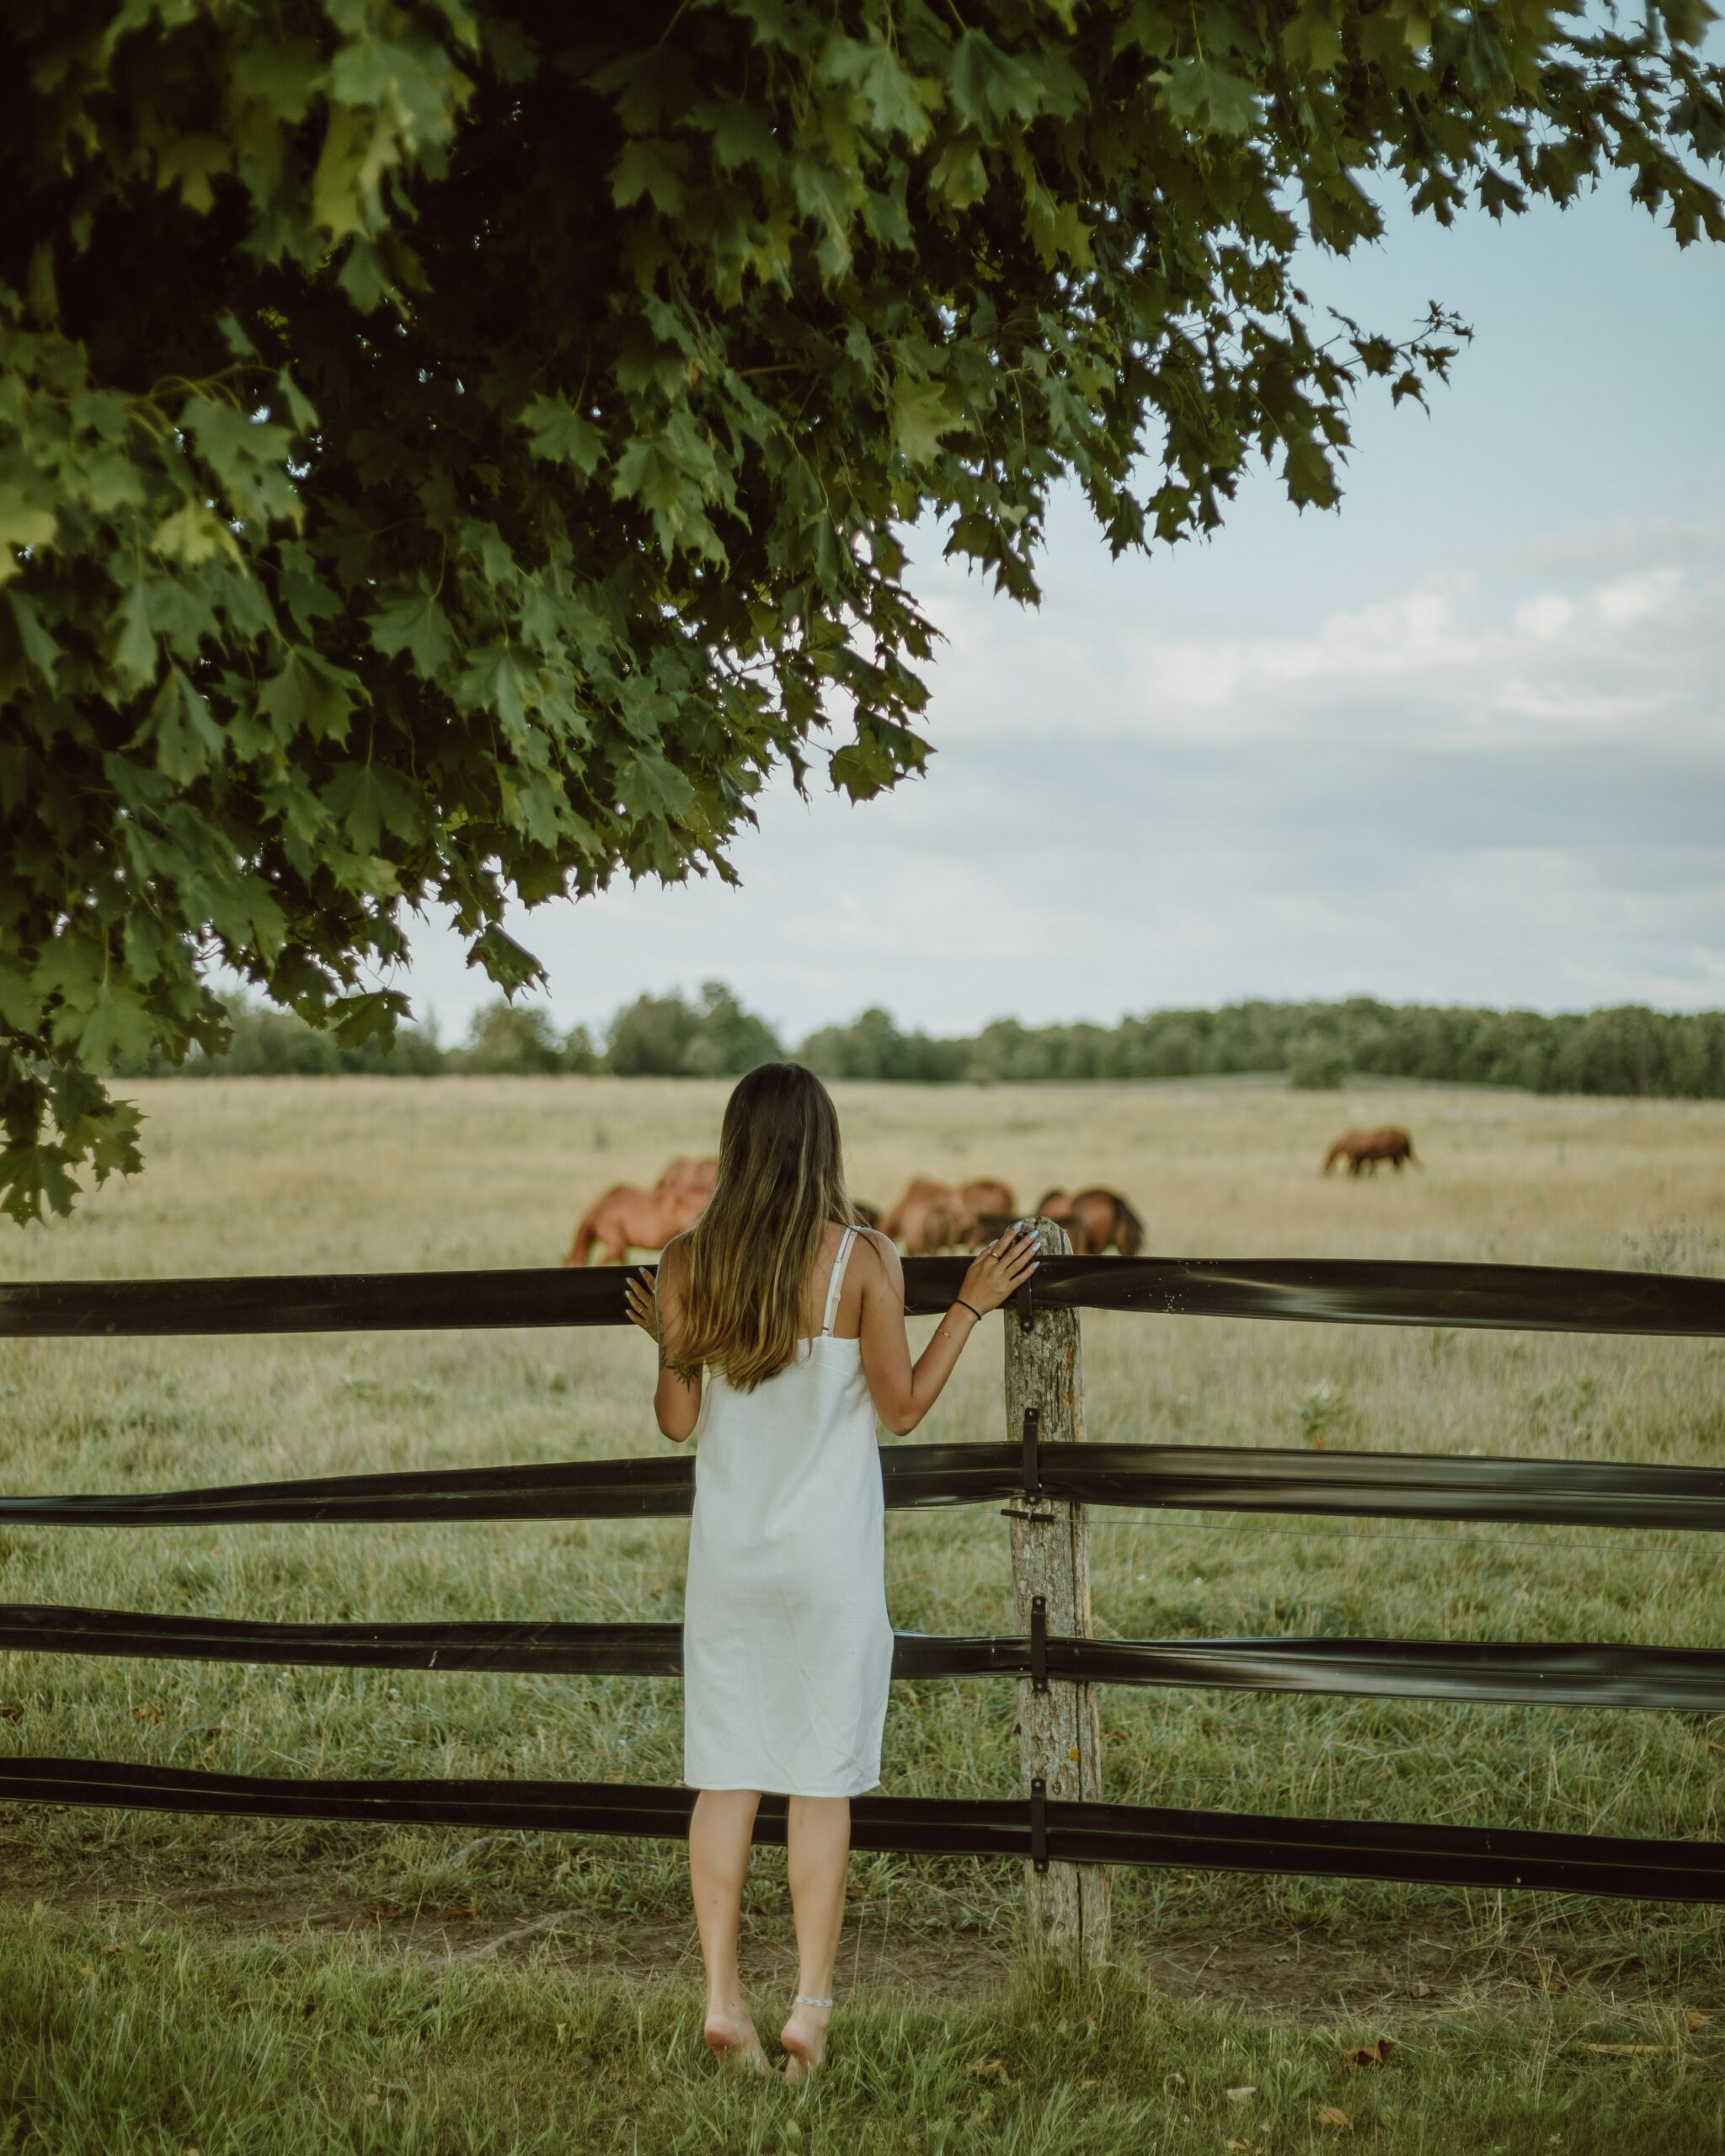 A woman who appears to be a Highly Sensitive Person leaning against a fence watching horses